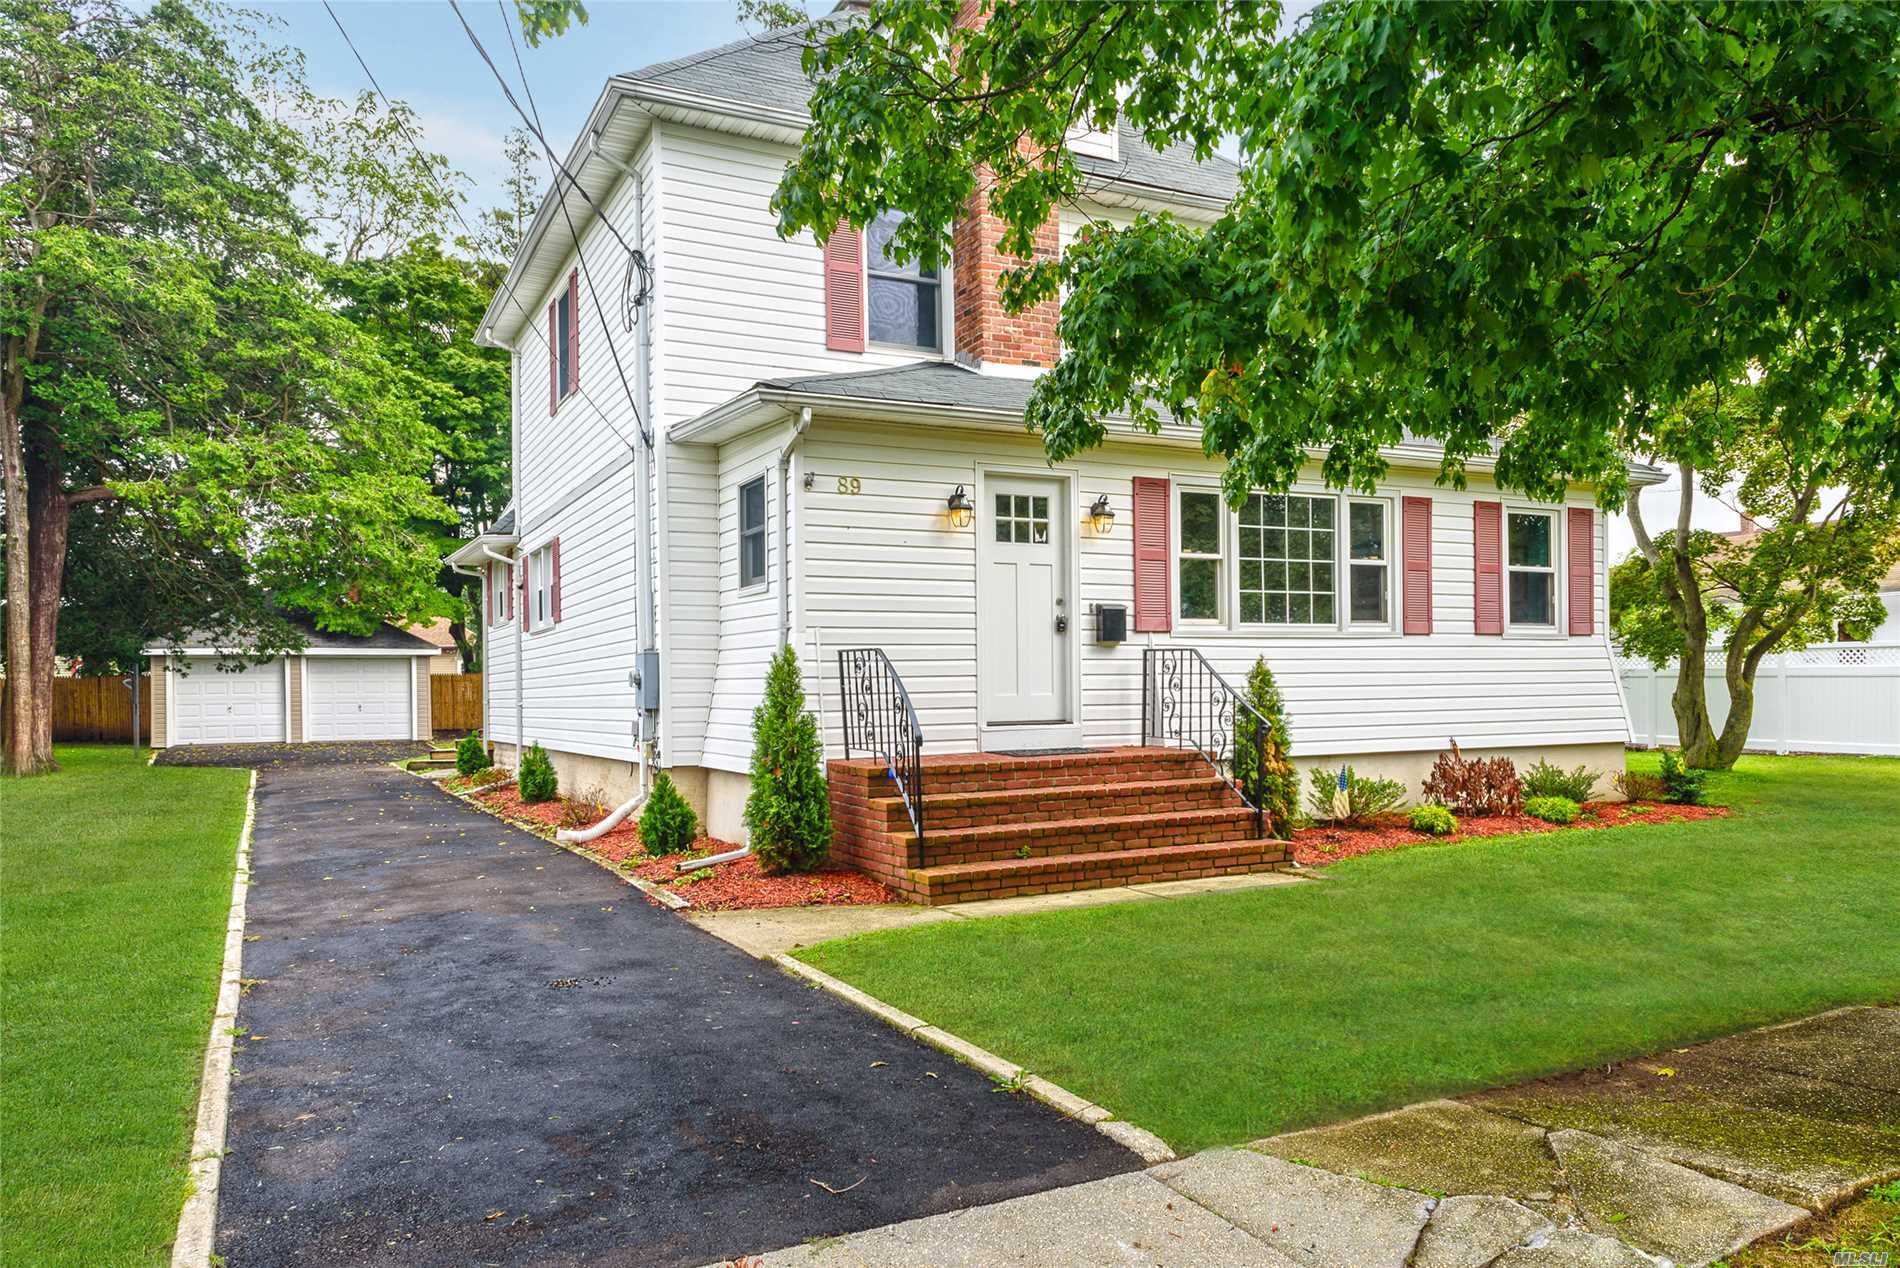 89 Hallock St - Farmingdale, New York